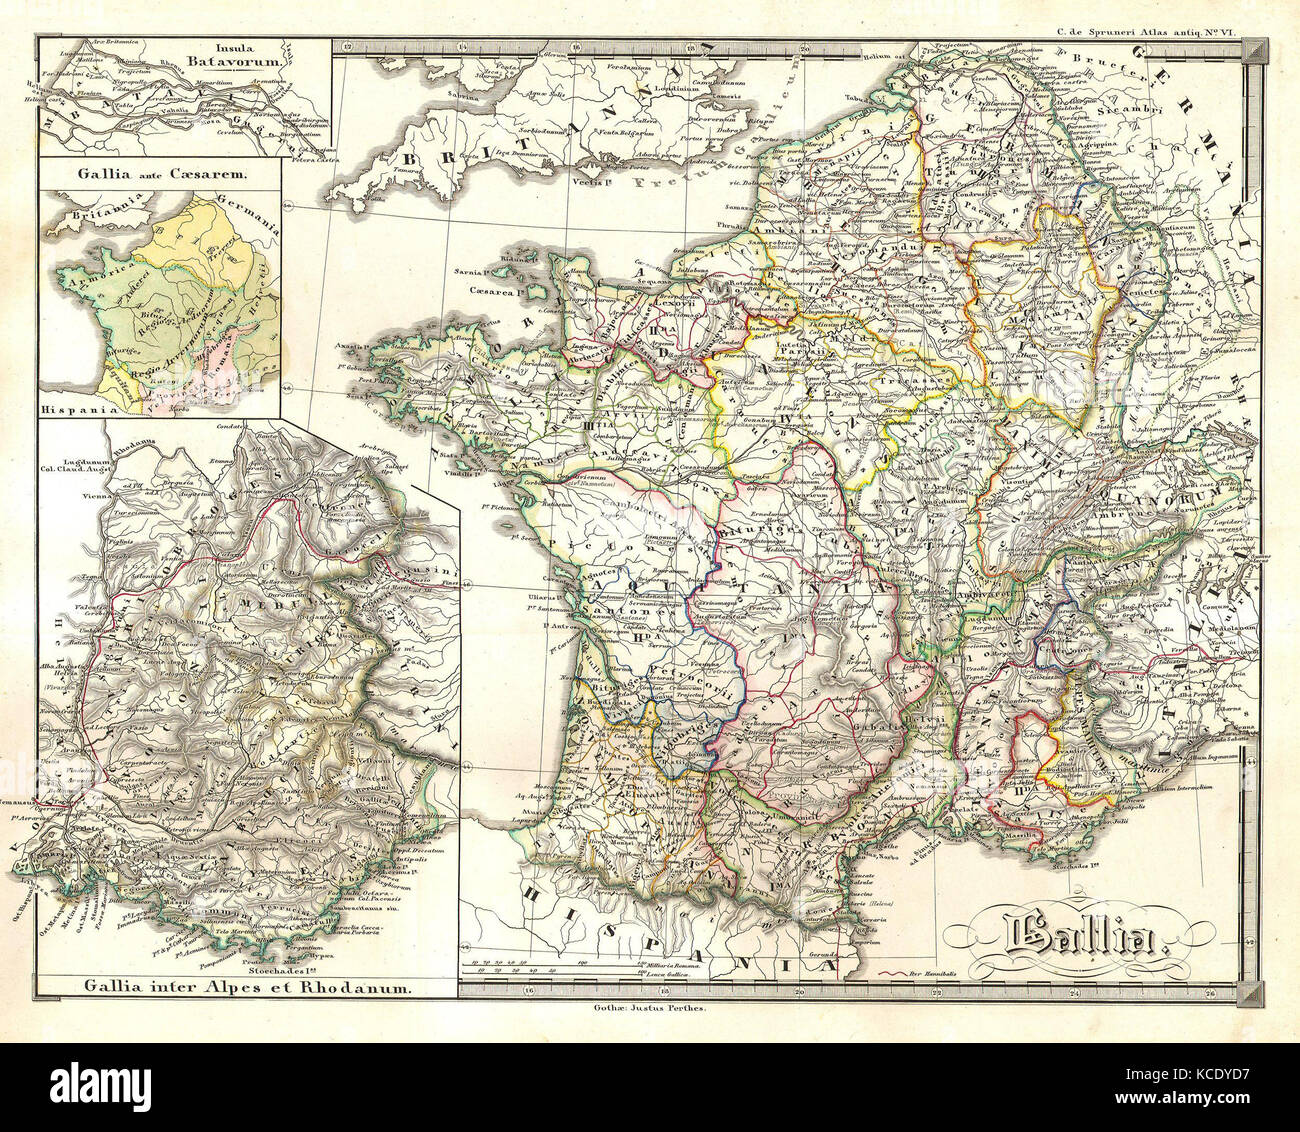 1855, Spruneri Map of France, Gaul, Gallia in Ancient Times - Stock Image